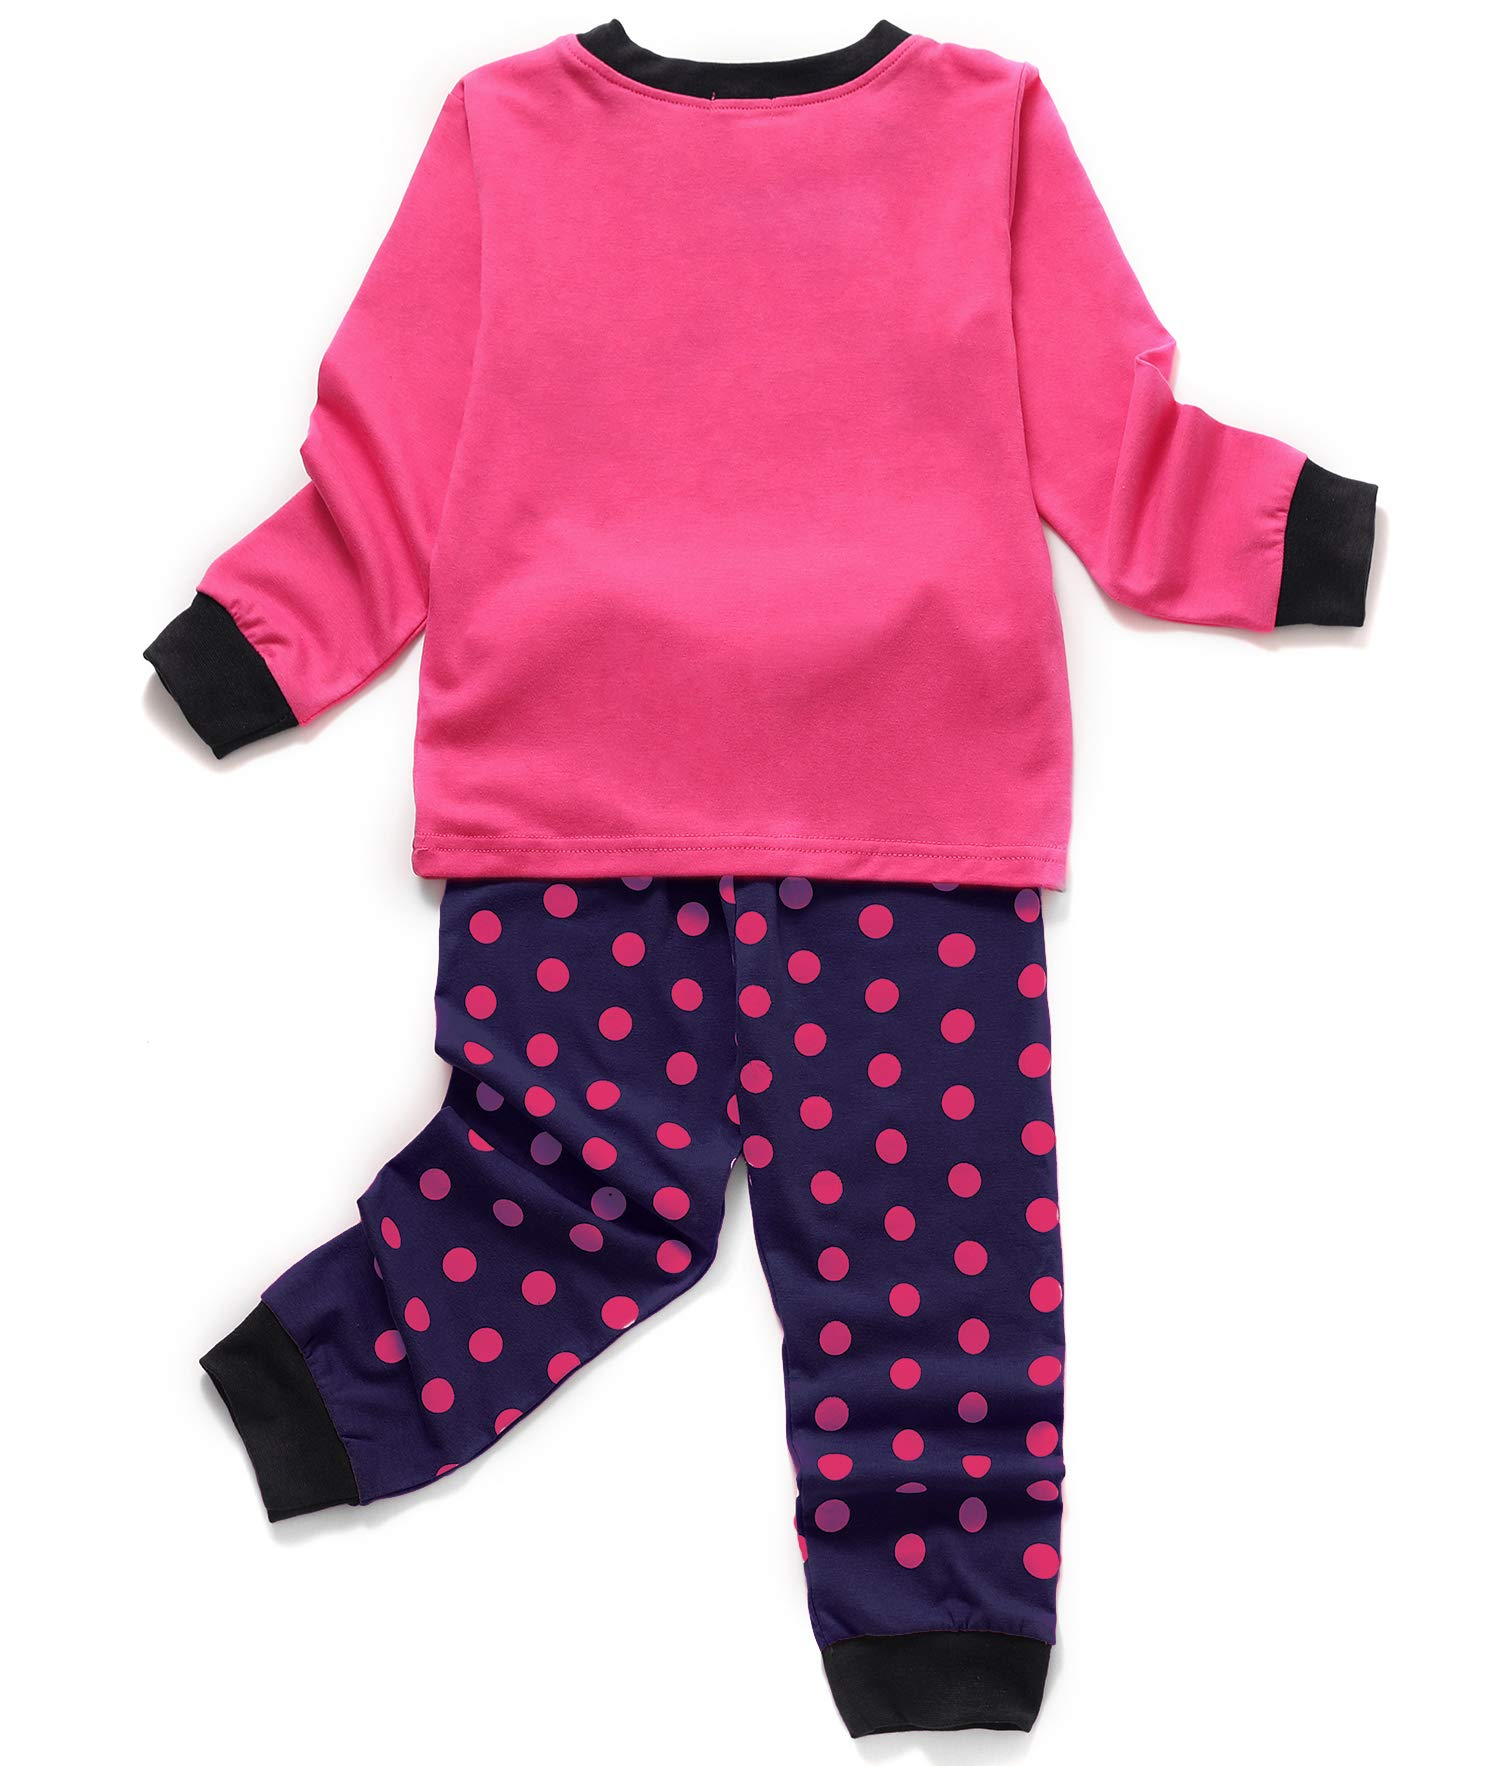 Girls Owl Pajamas Toddler Kids Long Sleeve PJs 2 Pieces Cotton Sleepwear Set Size 4-5 Years